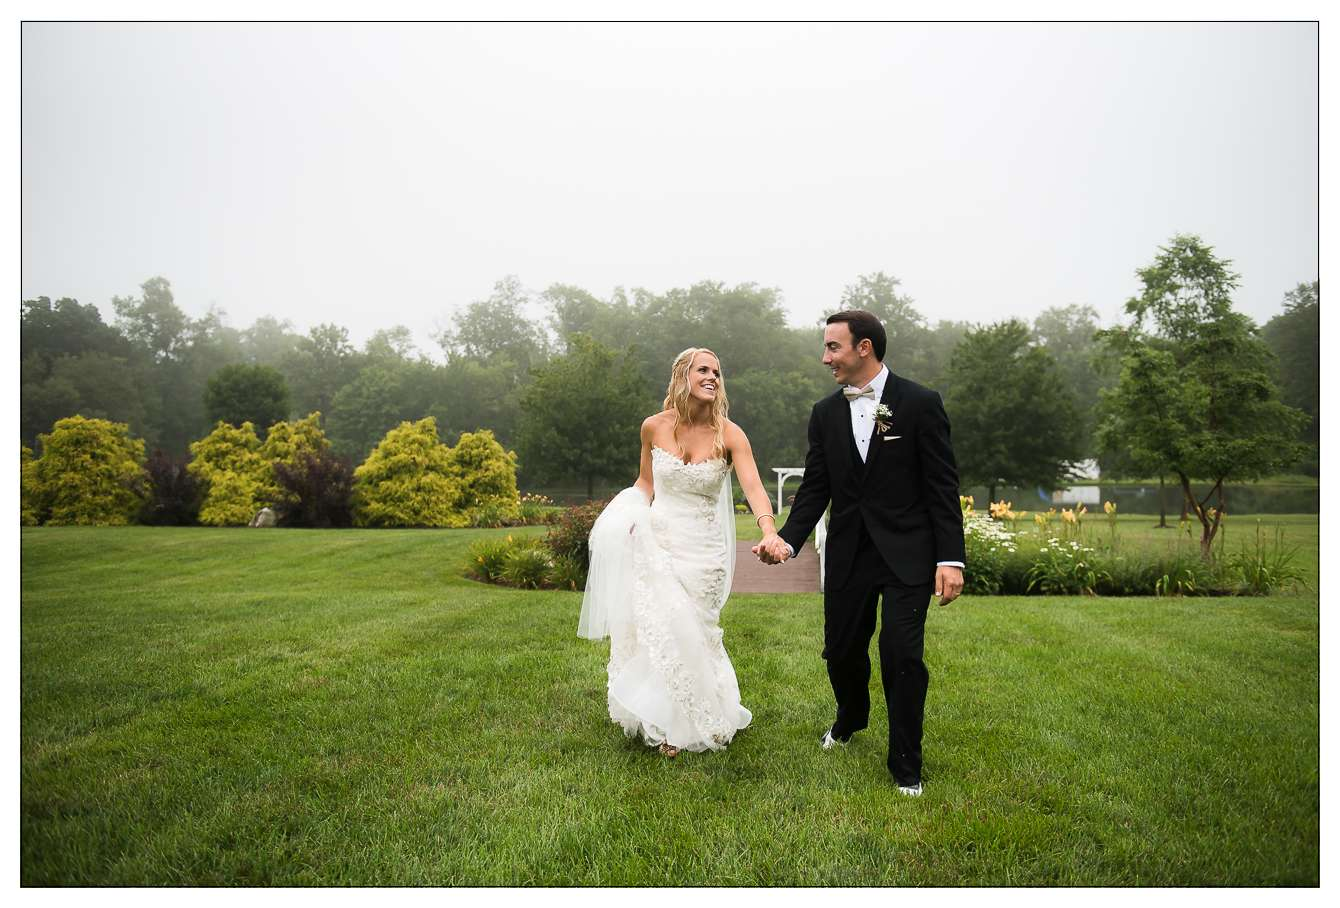 murtha_wedding_brandywine_manor_house_wedding-036.jpg